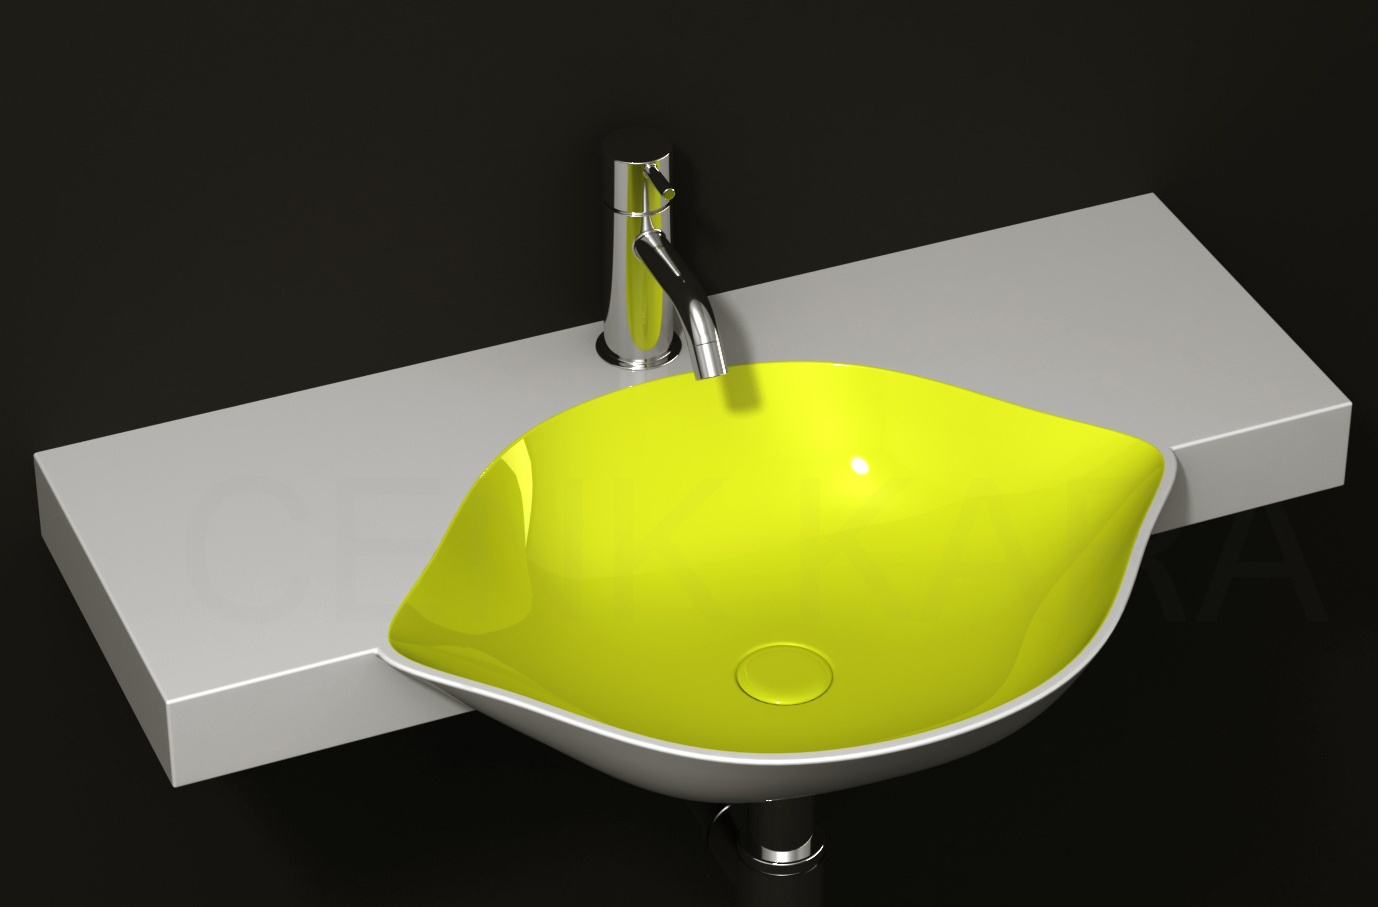 Cool Fruit Inspired Bathroom Idea Sinks Lemon